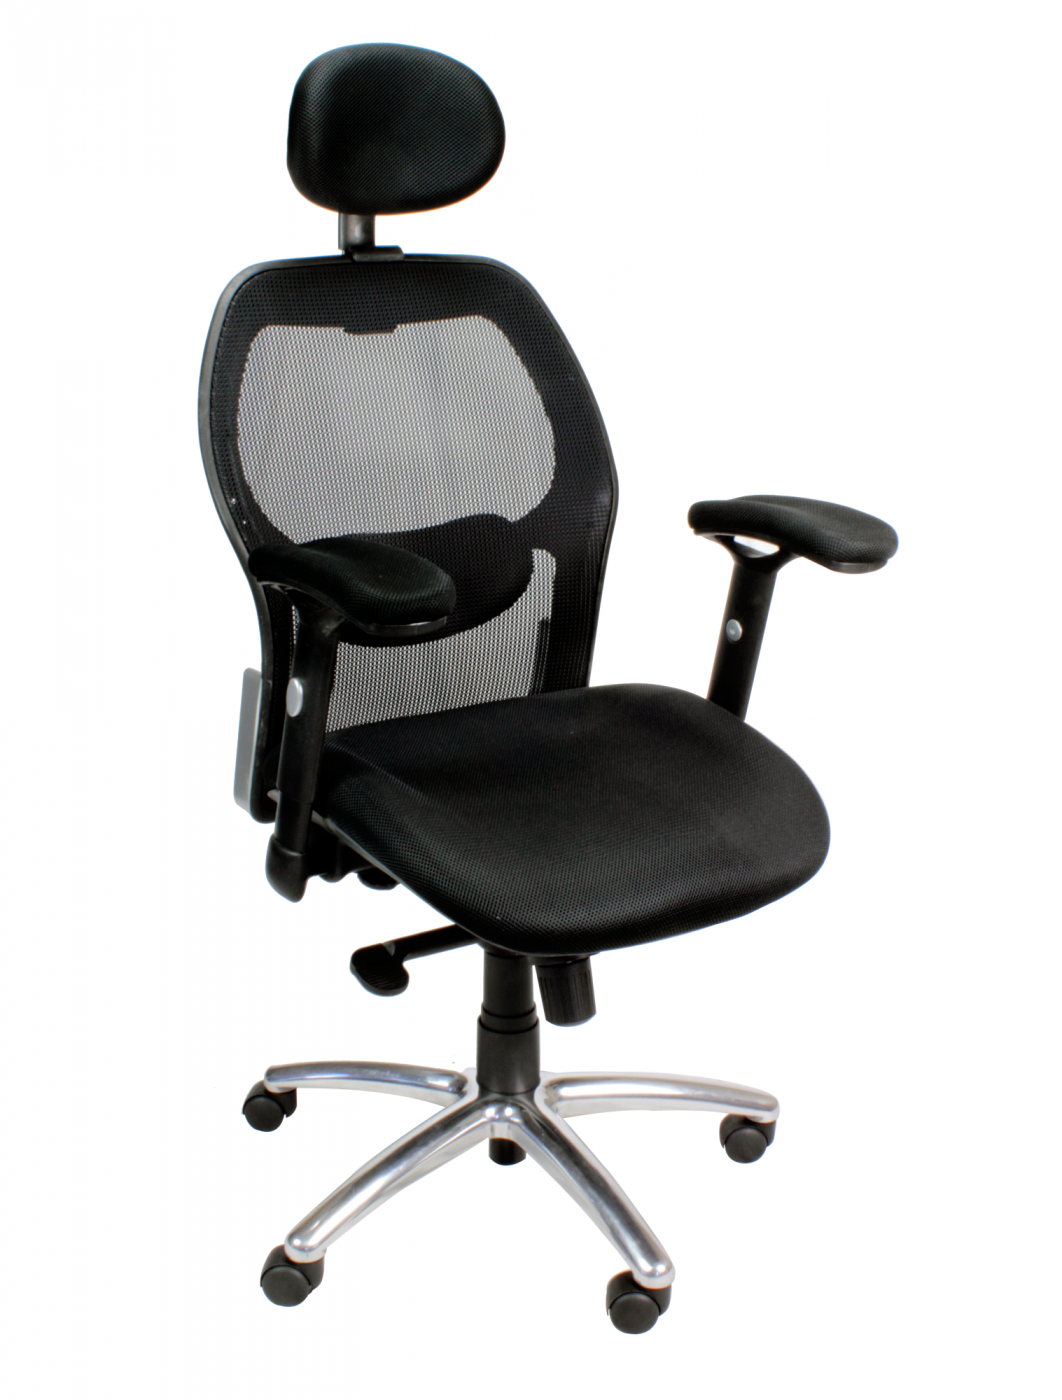 Hermes Operator Armchair Bcm F103 Bk 121 Office Furniture